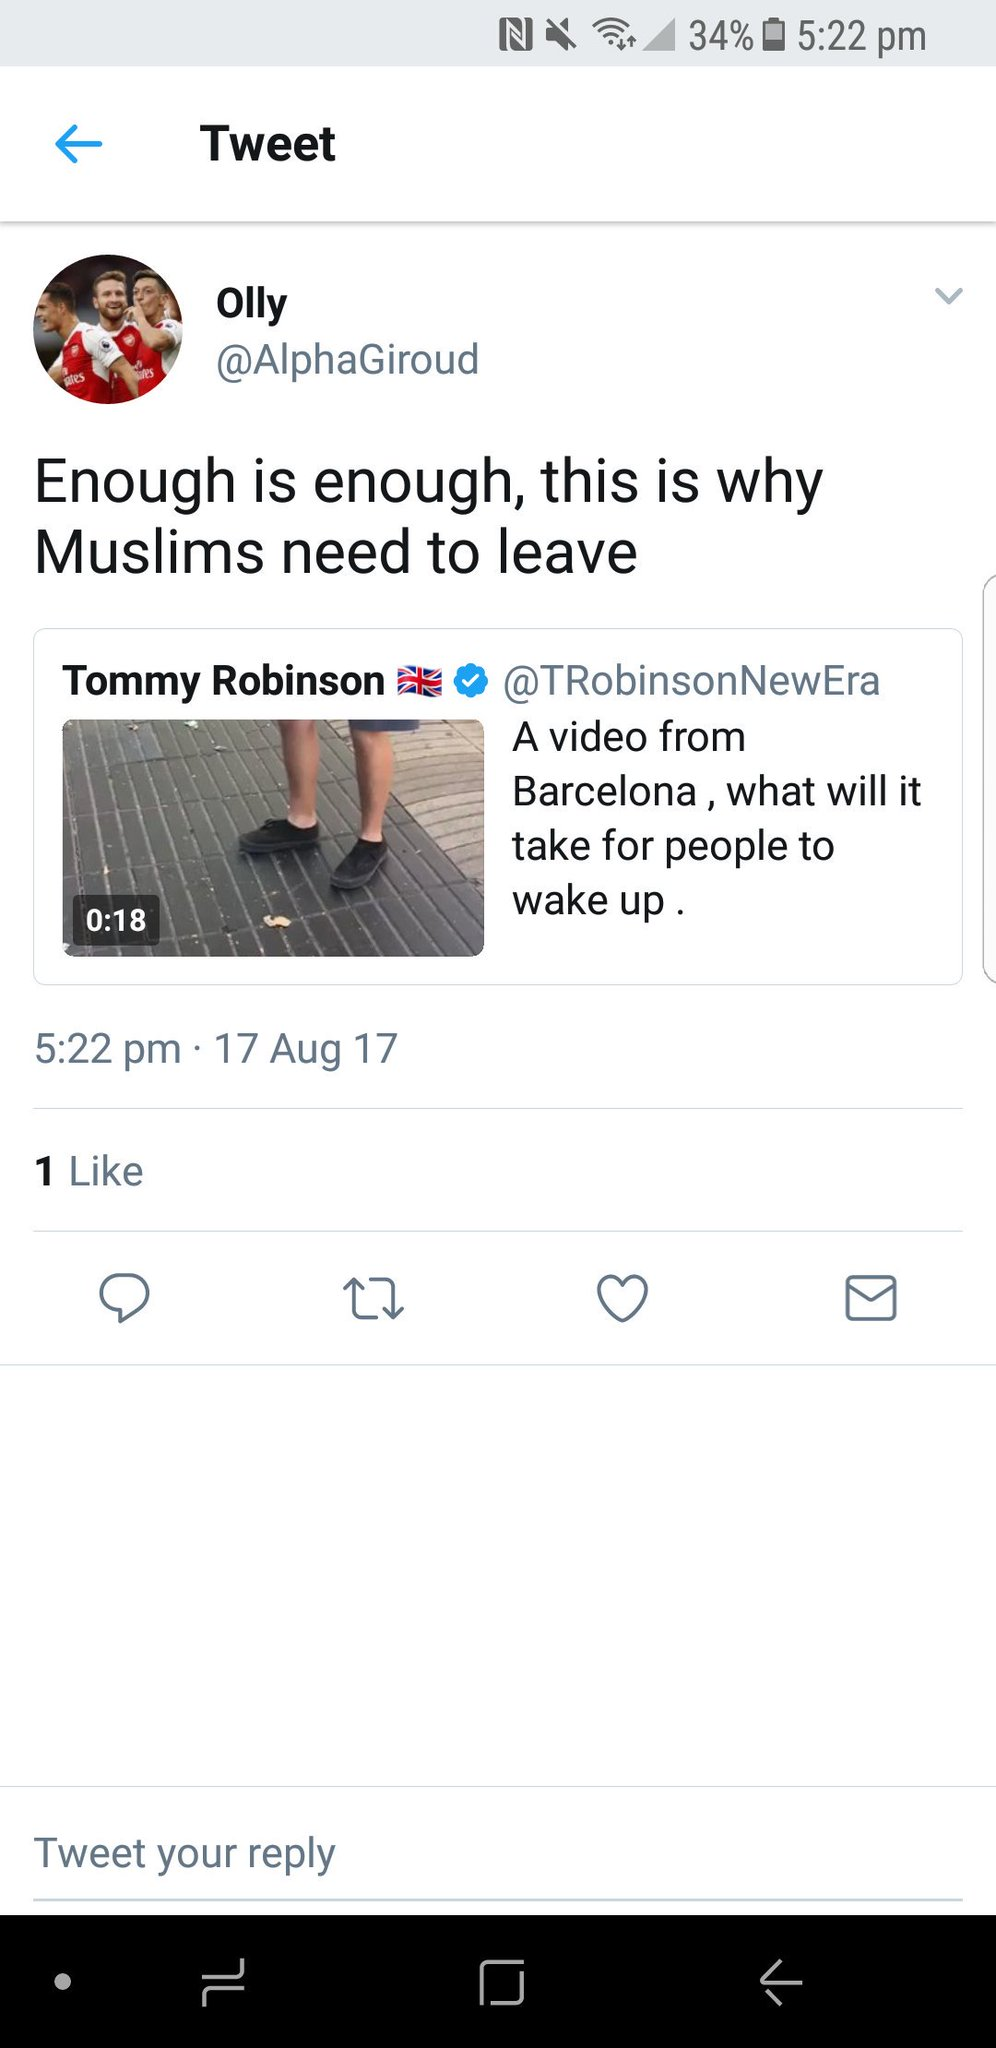 RT @MITROVlC: Anyone gonna tell him his Avi is 3 Muslims? https://t.co/ntLp4bYCSg